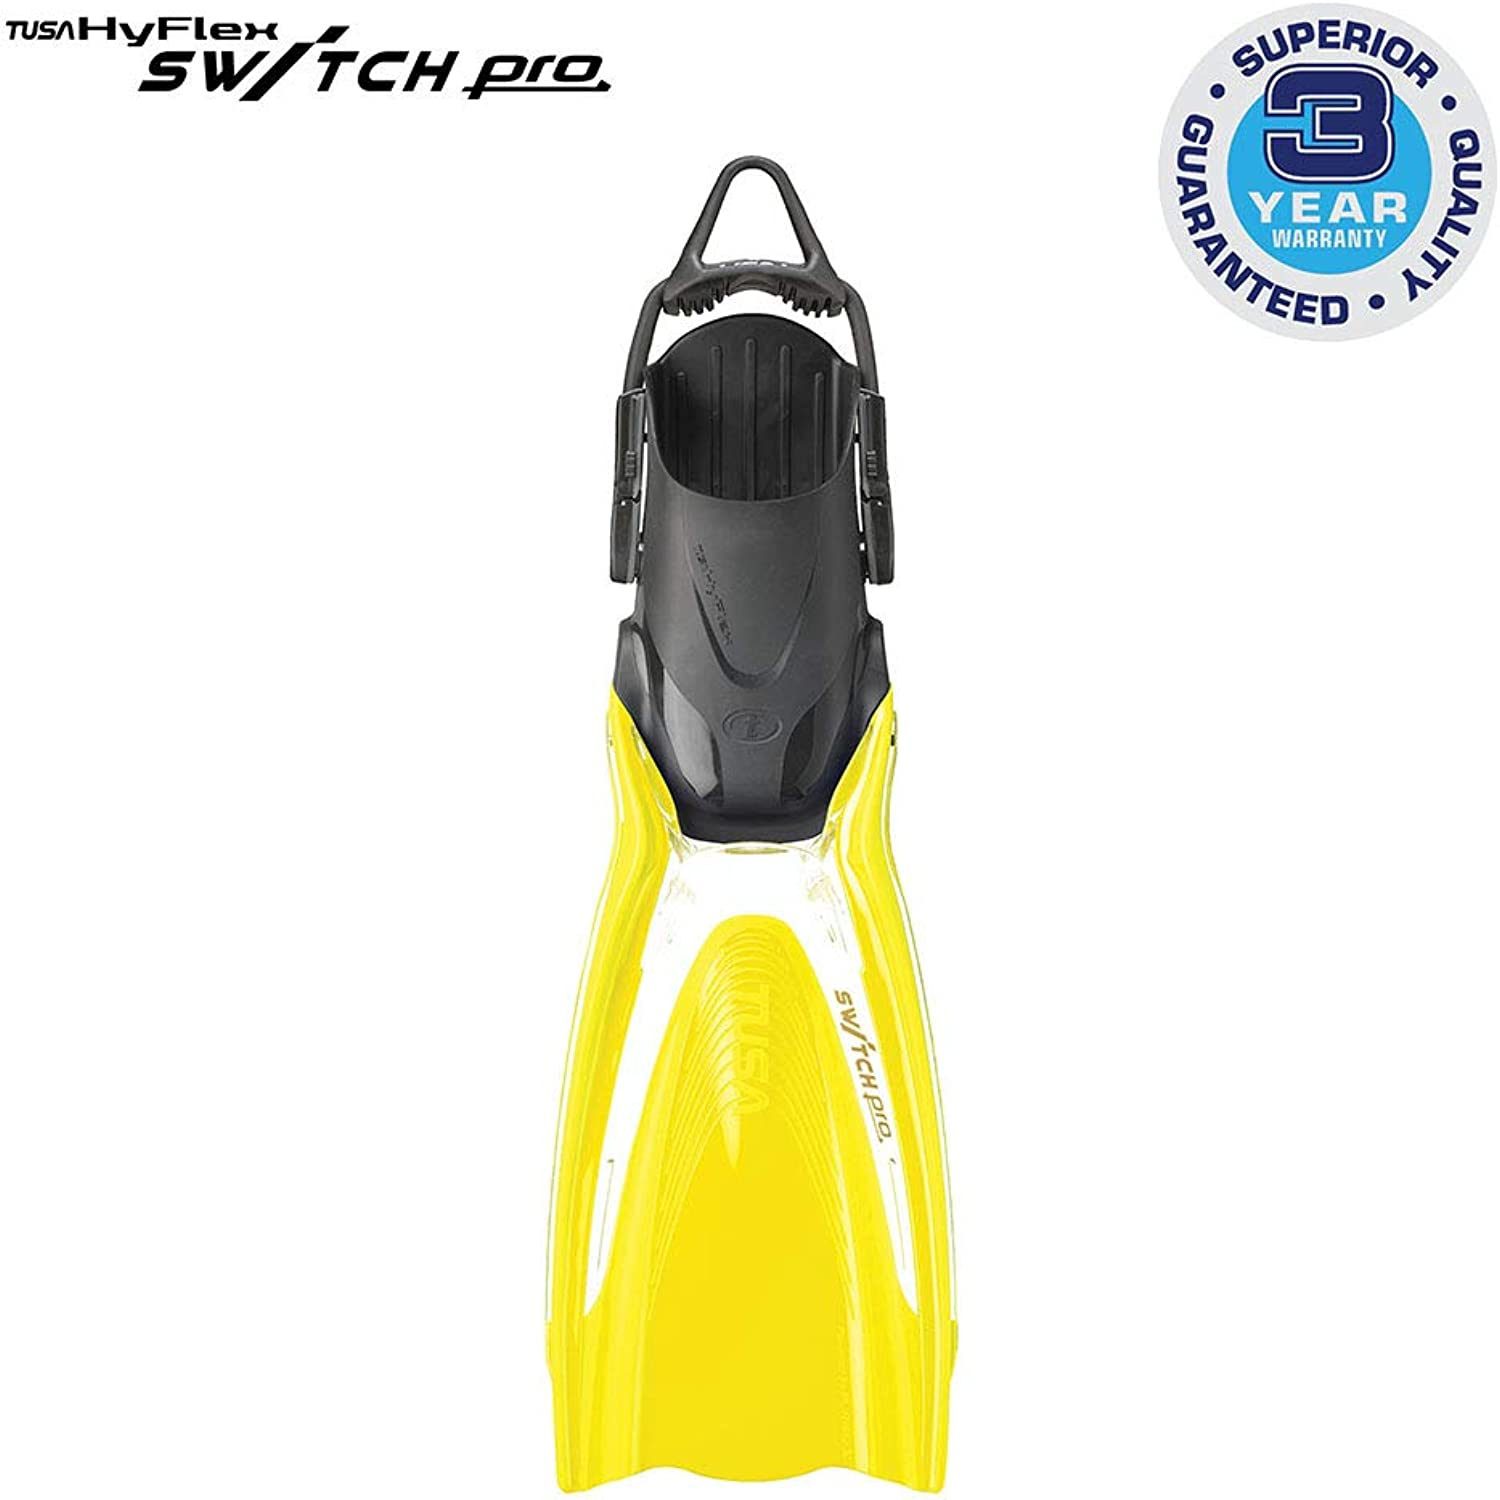 TUSA SF0107 Hyflex Switch Pro Scuba Diving Fins